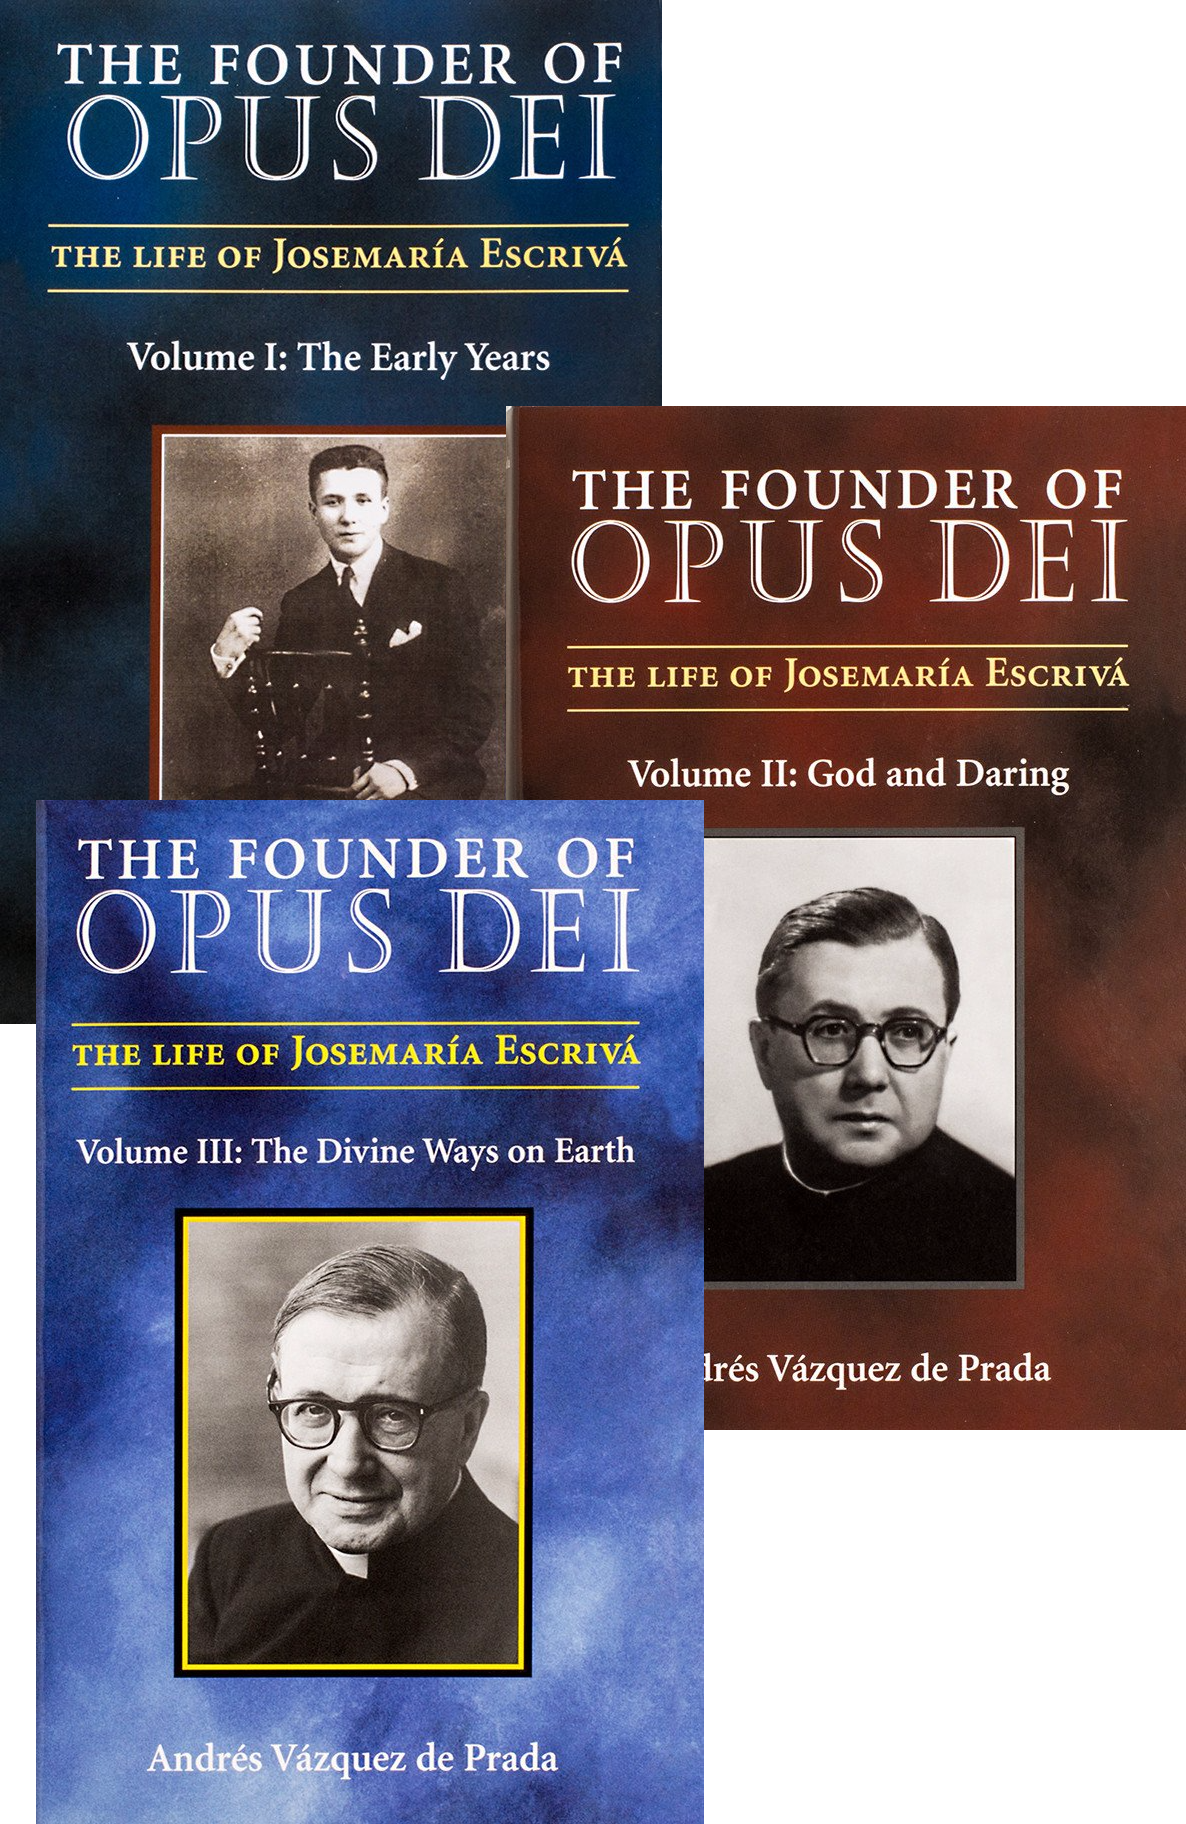 The Founder of Opus Dei Full Set - Scepter Publishers